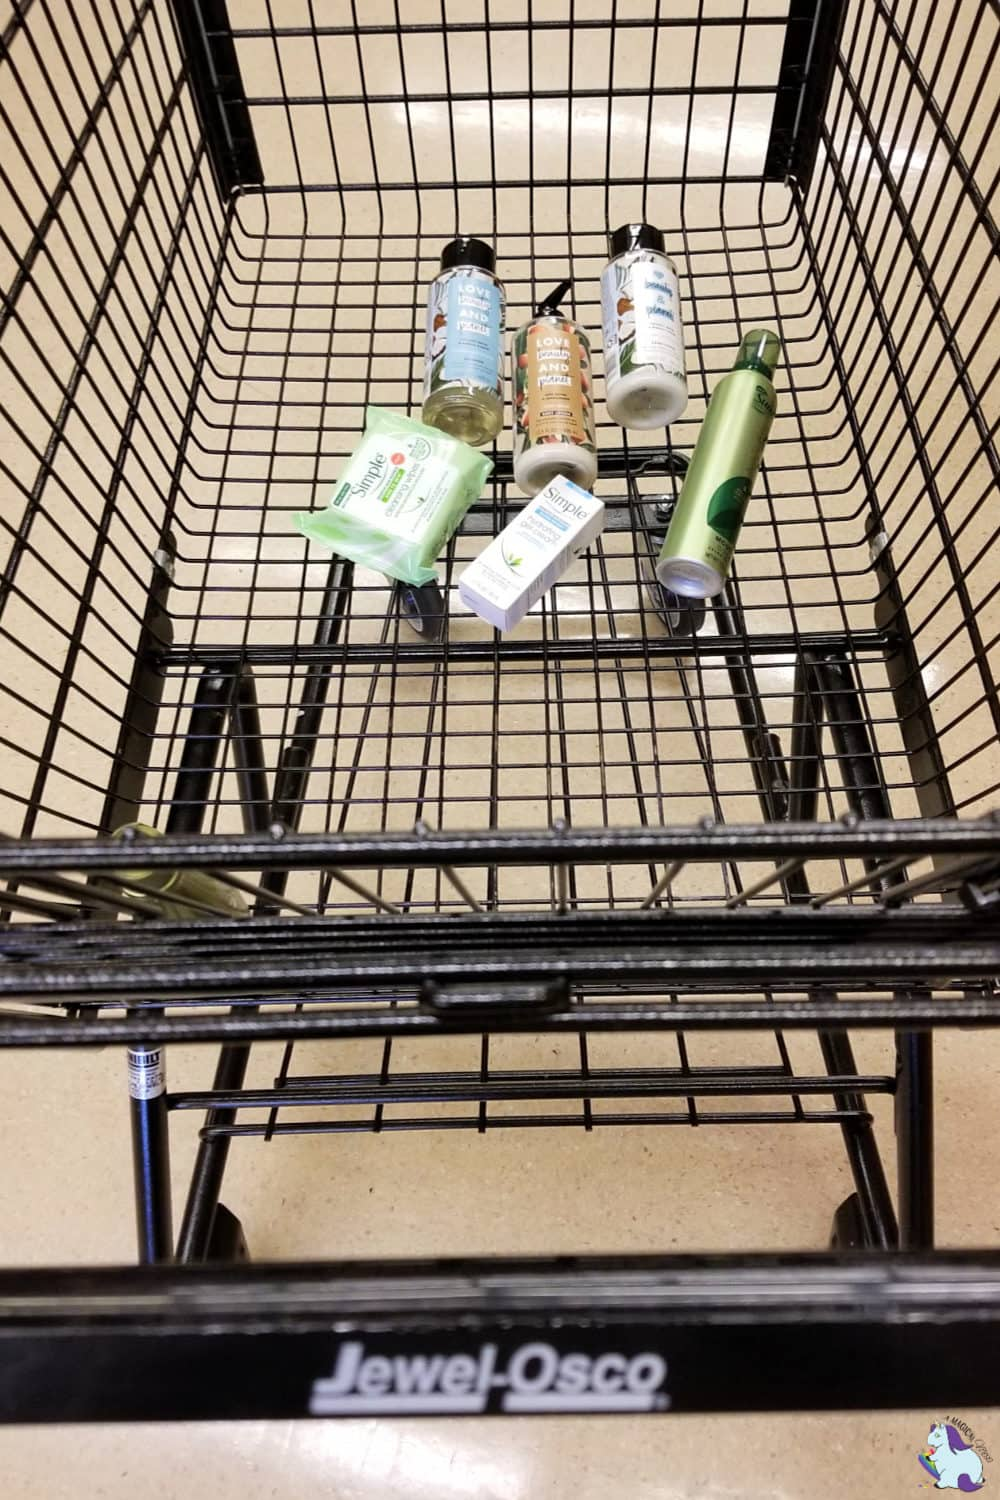 Finding all my fave fall beauty products while shopping for groceries!